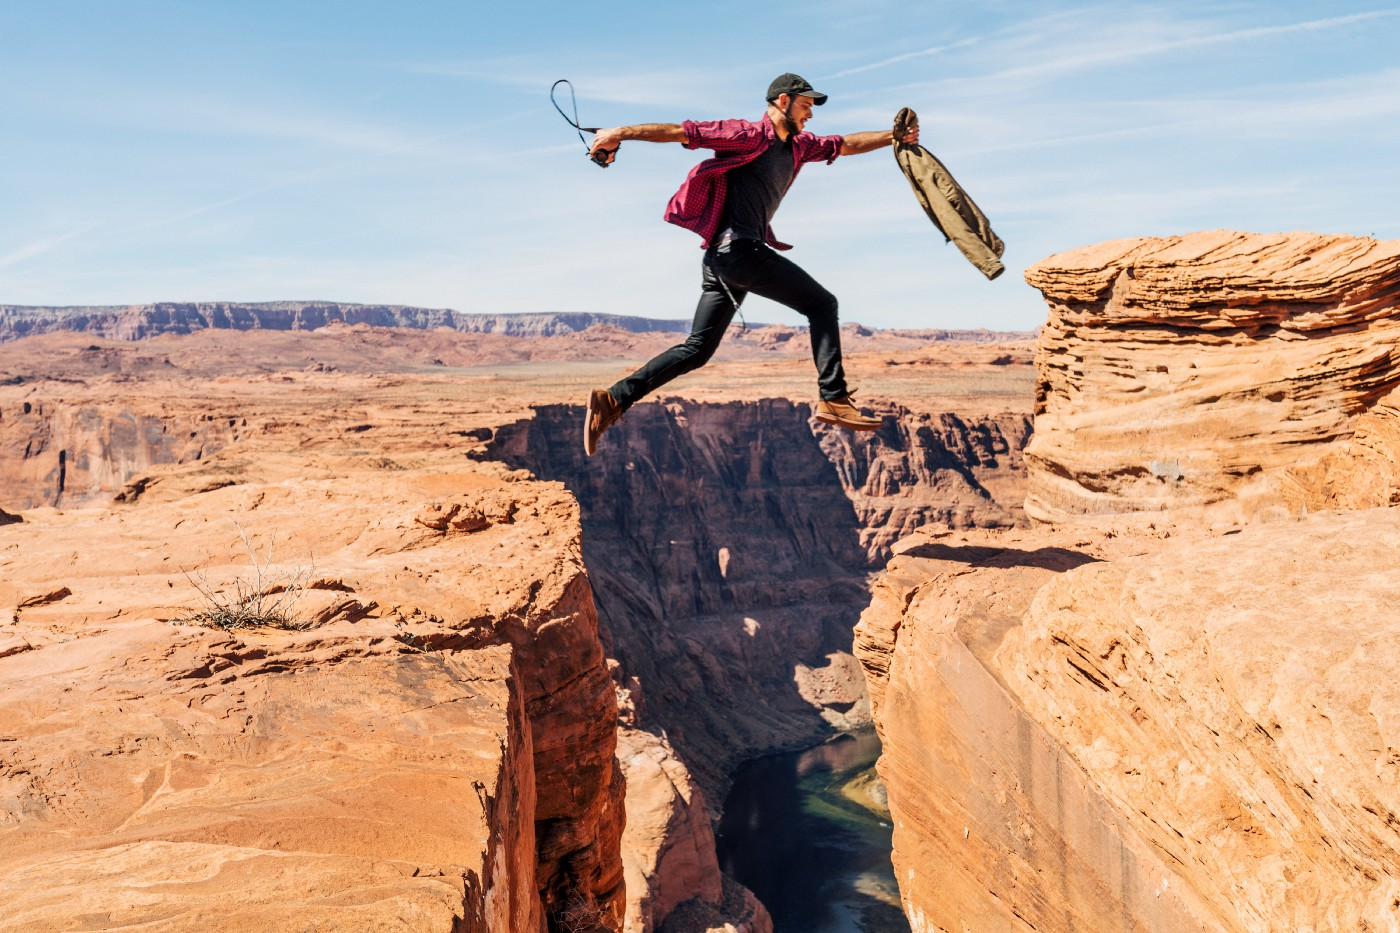 Man jumping over a cliff in the desert